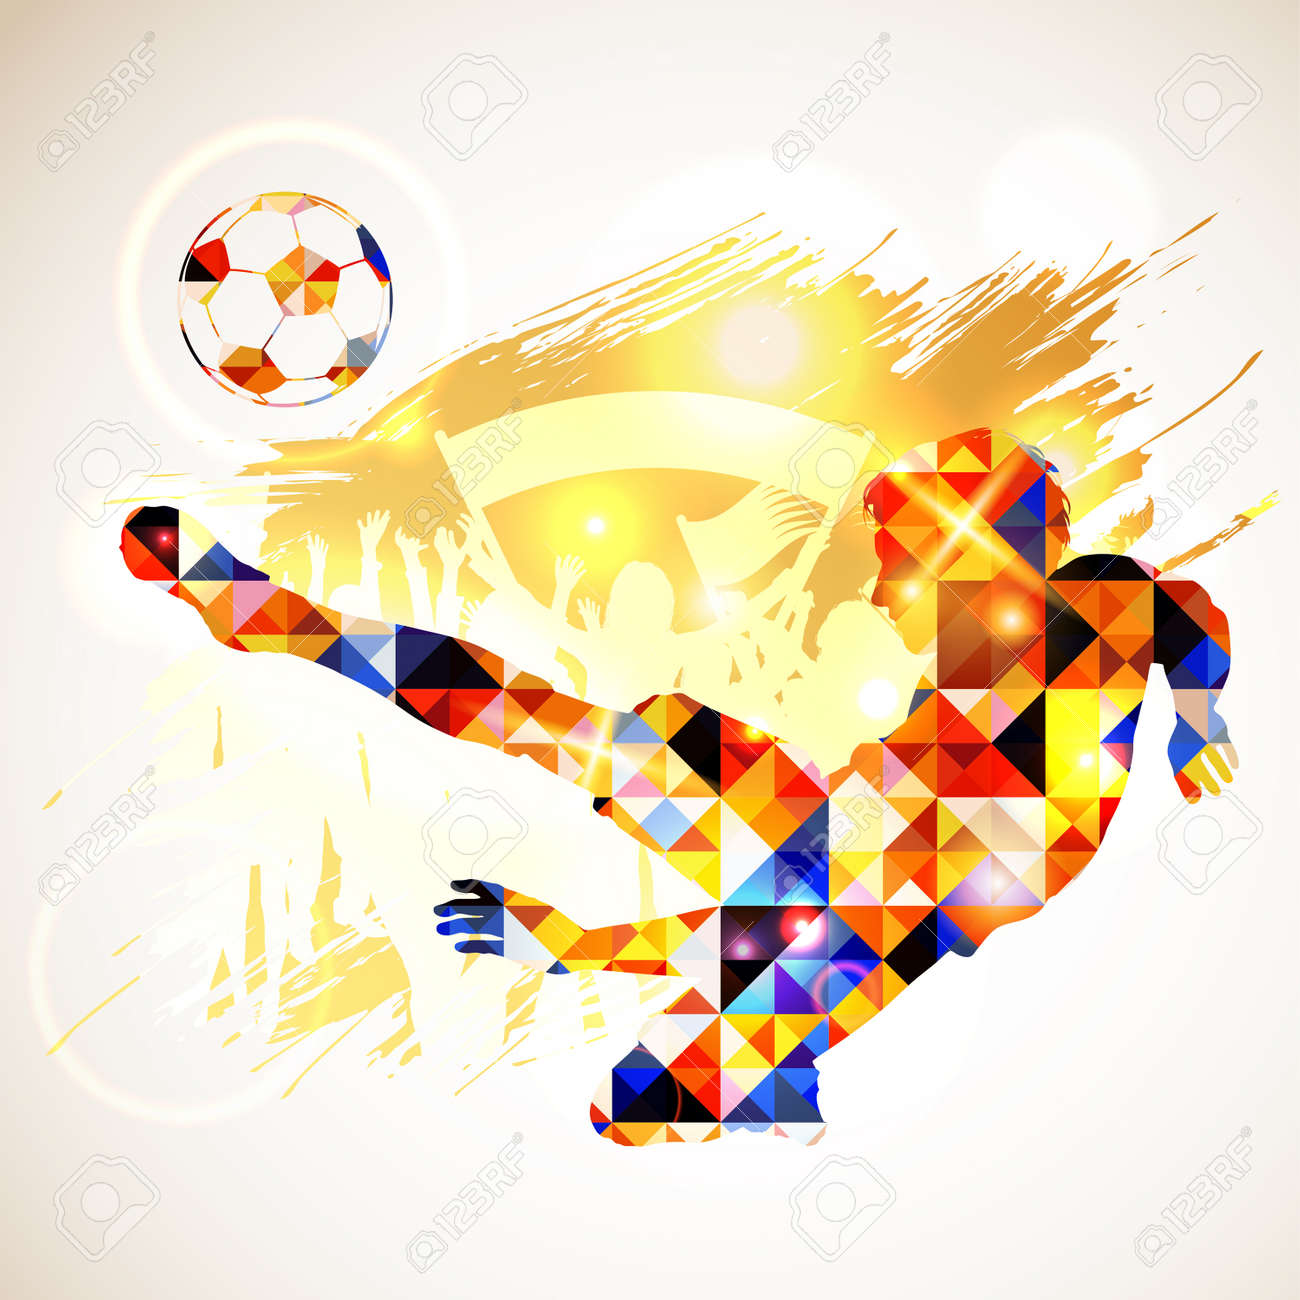 Silhouette Soccer Player and Ball in Mosaic Pattern with Fans on Grunge Background. Vector illustration. - 33750482